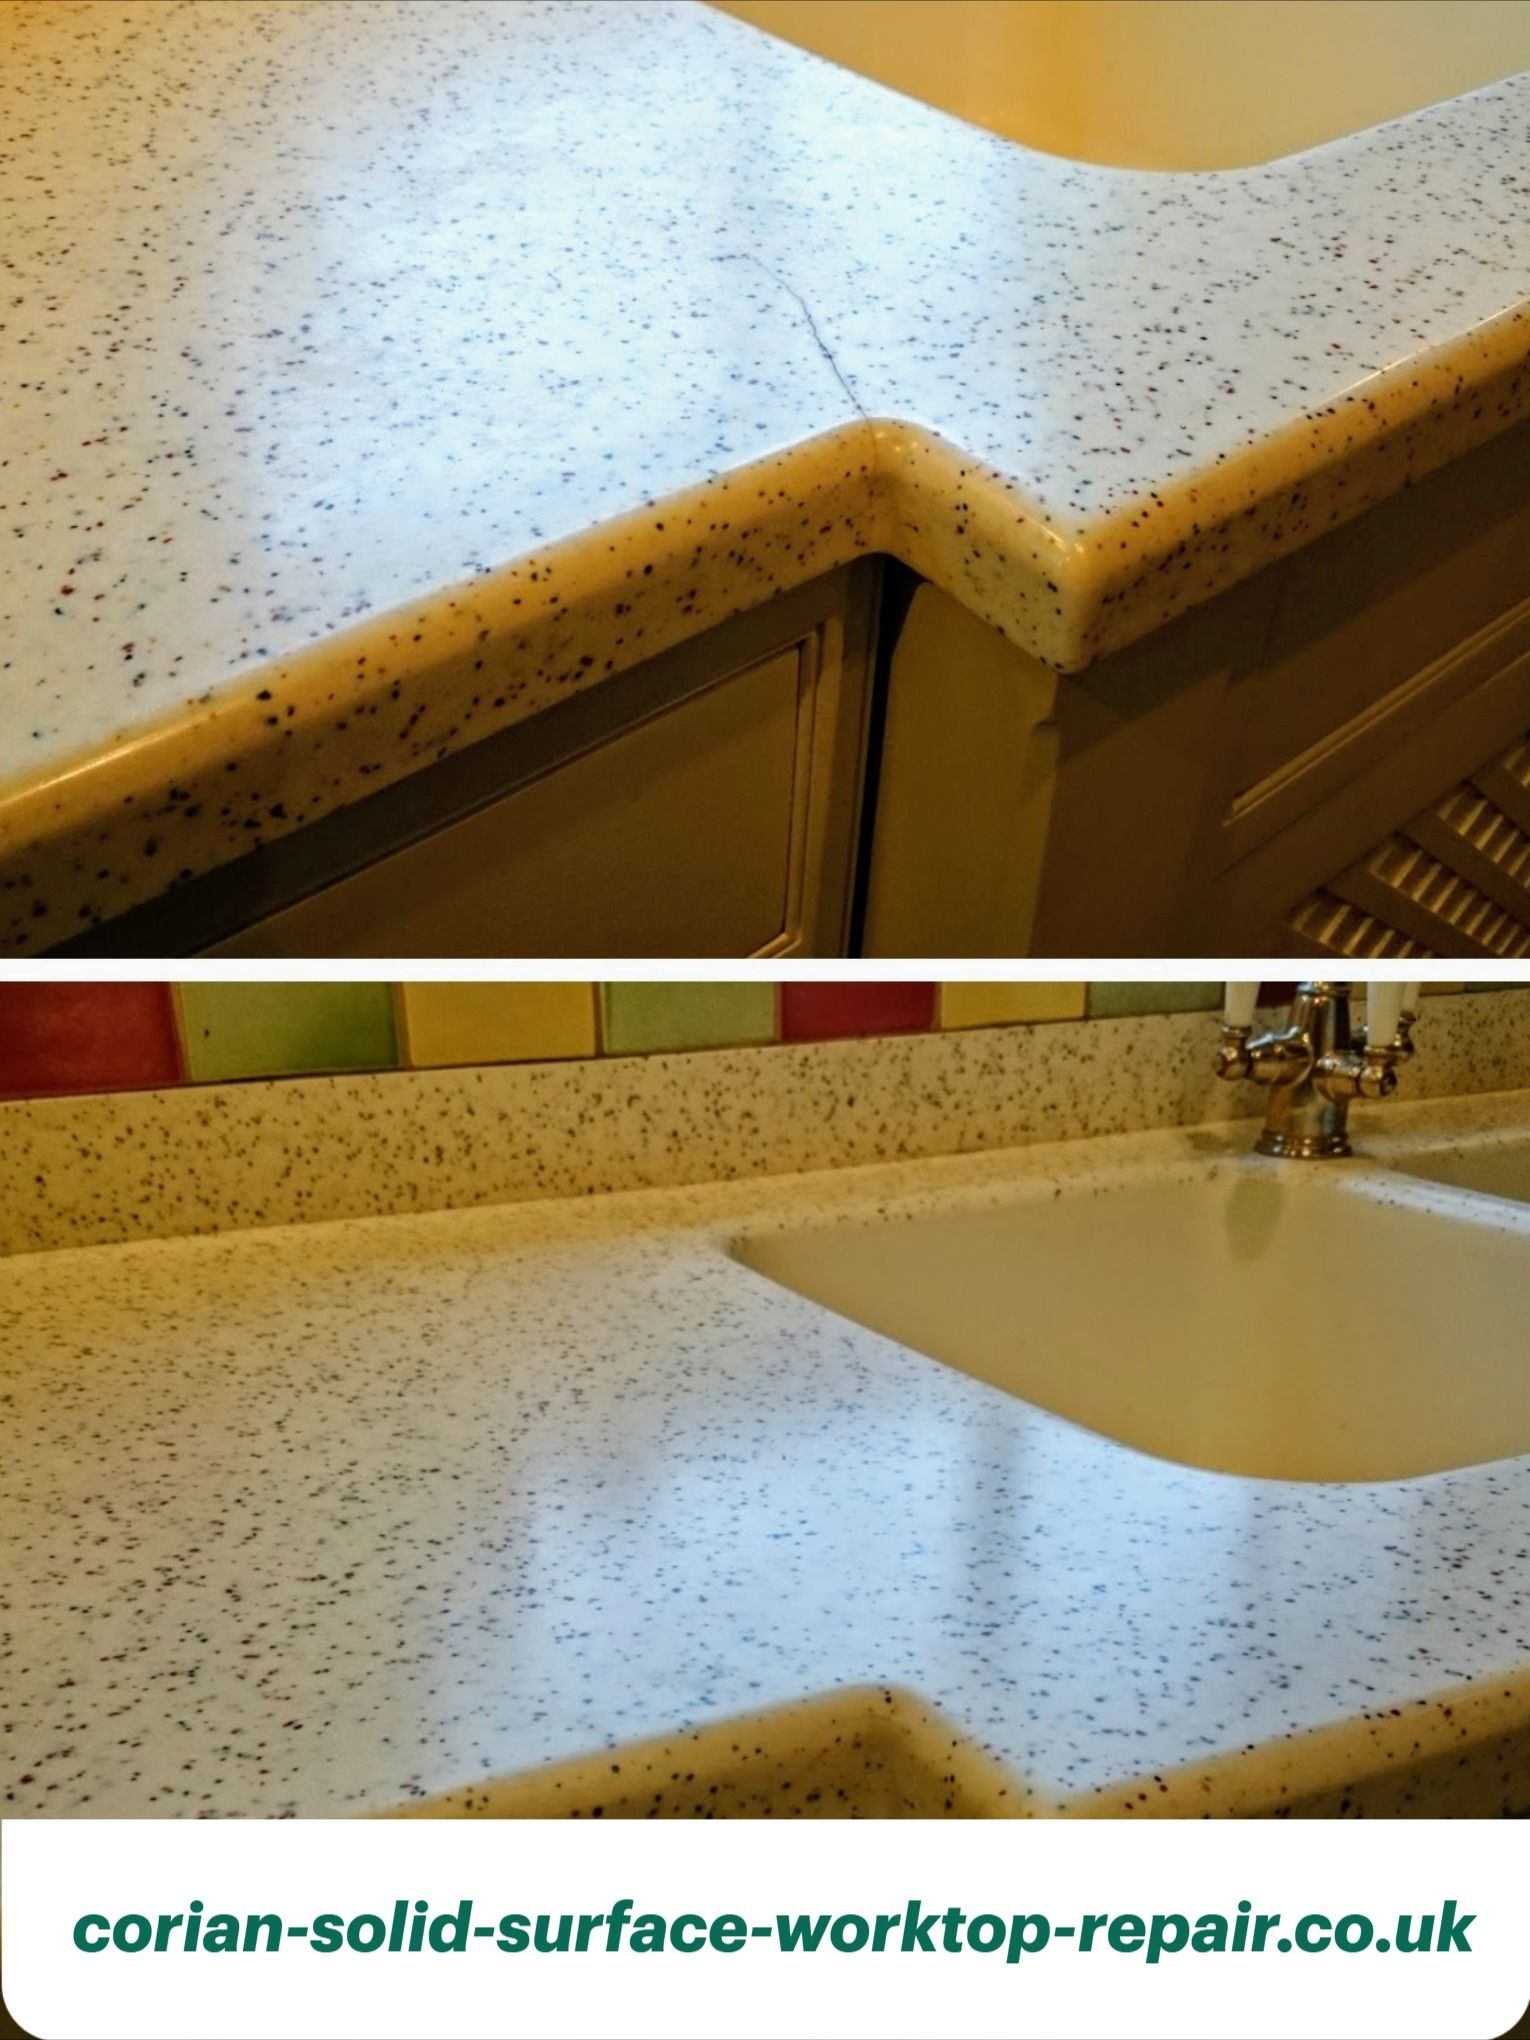 Worktop Repair In 2020 Corian Worktops Granite Worktops Corian